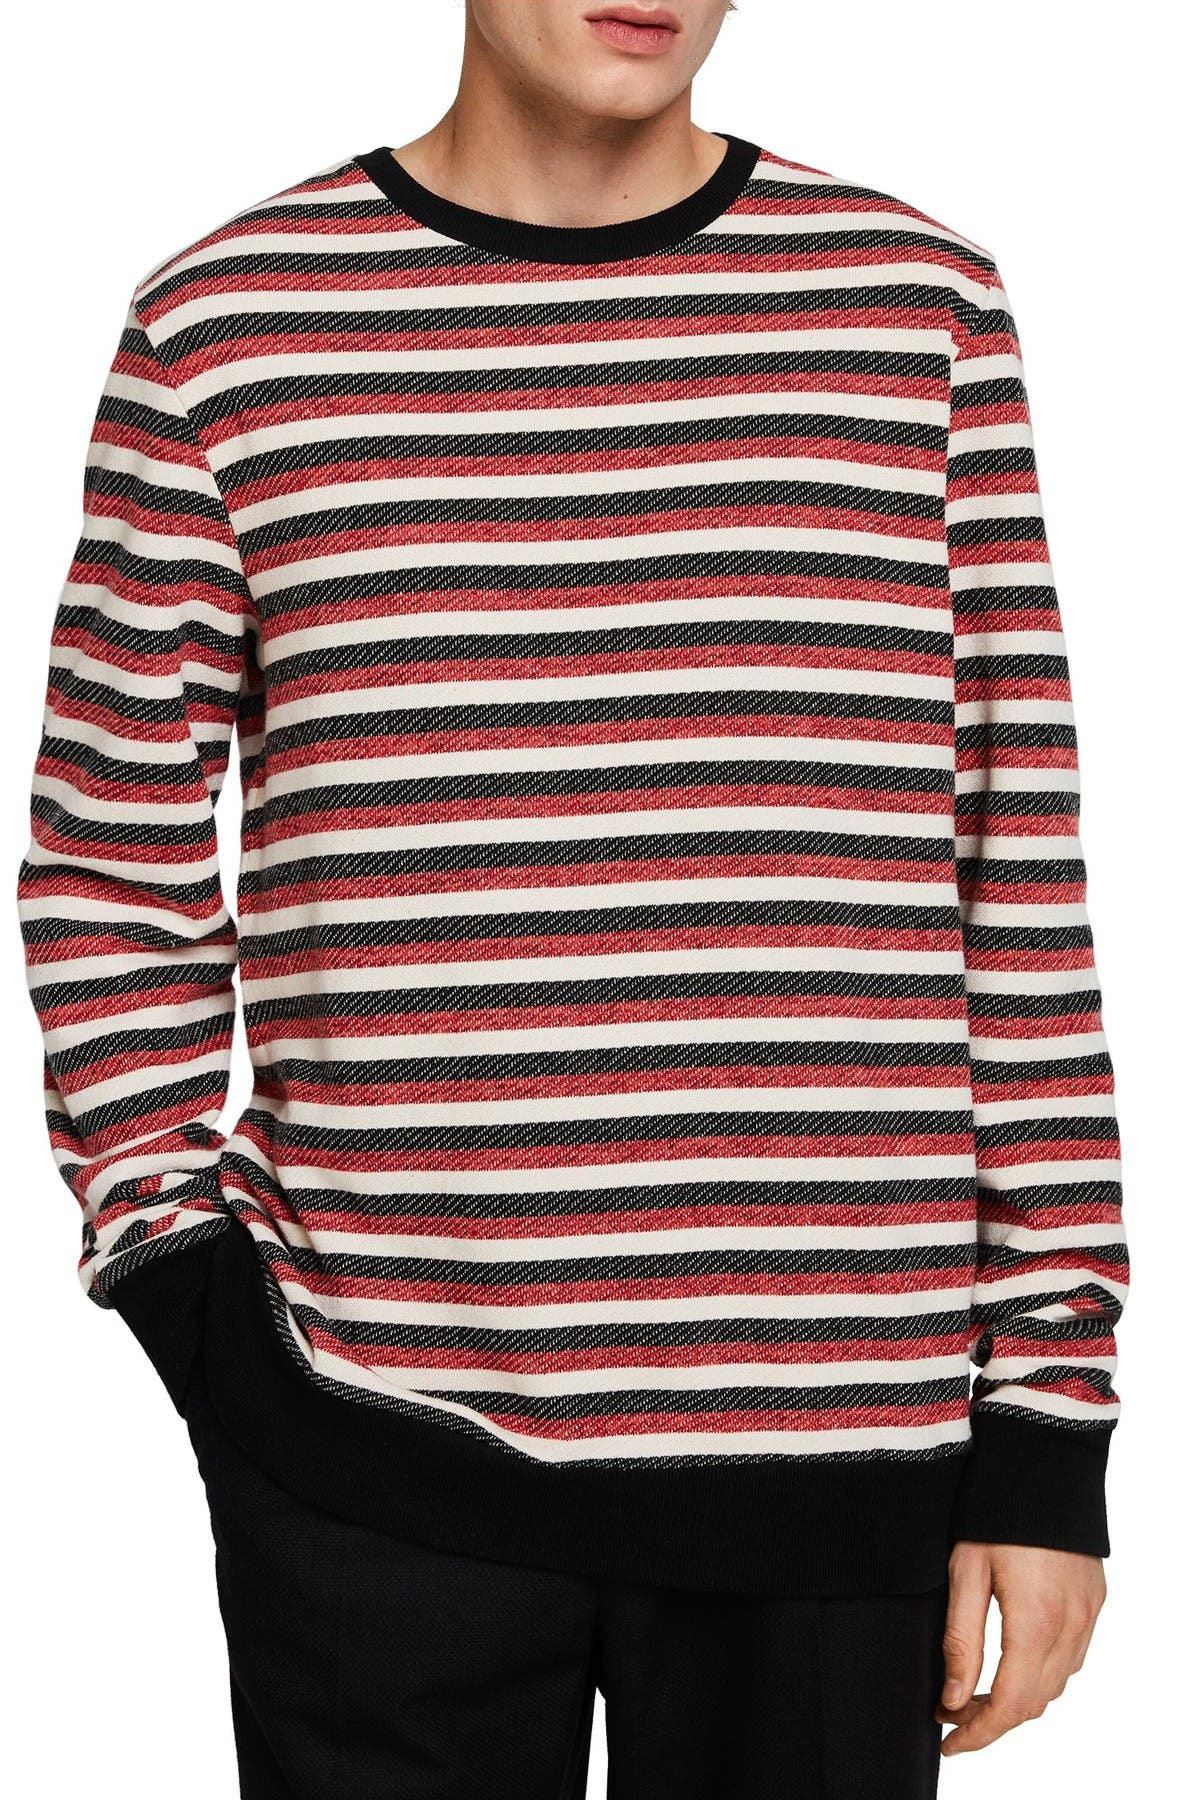 Image of Scotch & Soda Space Dye Crew Neck Pullover